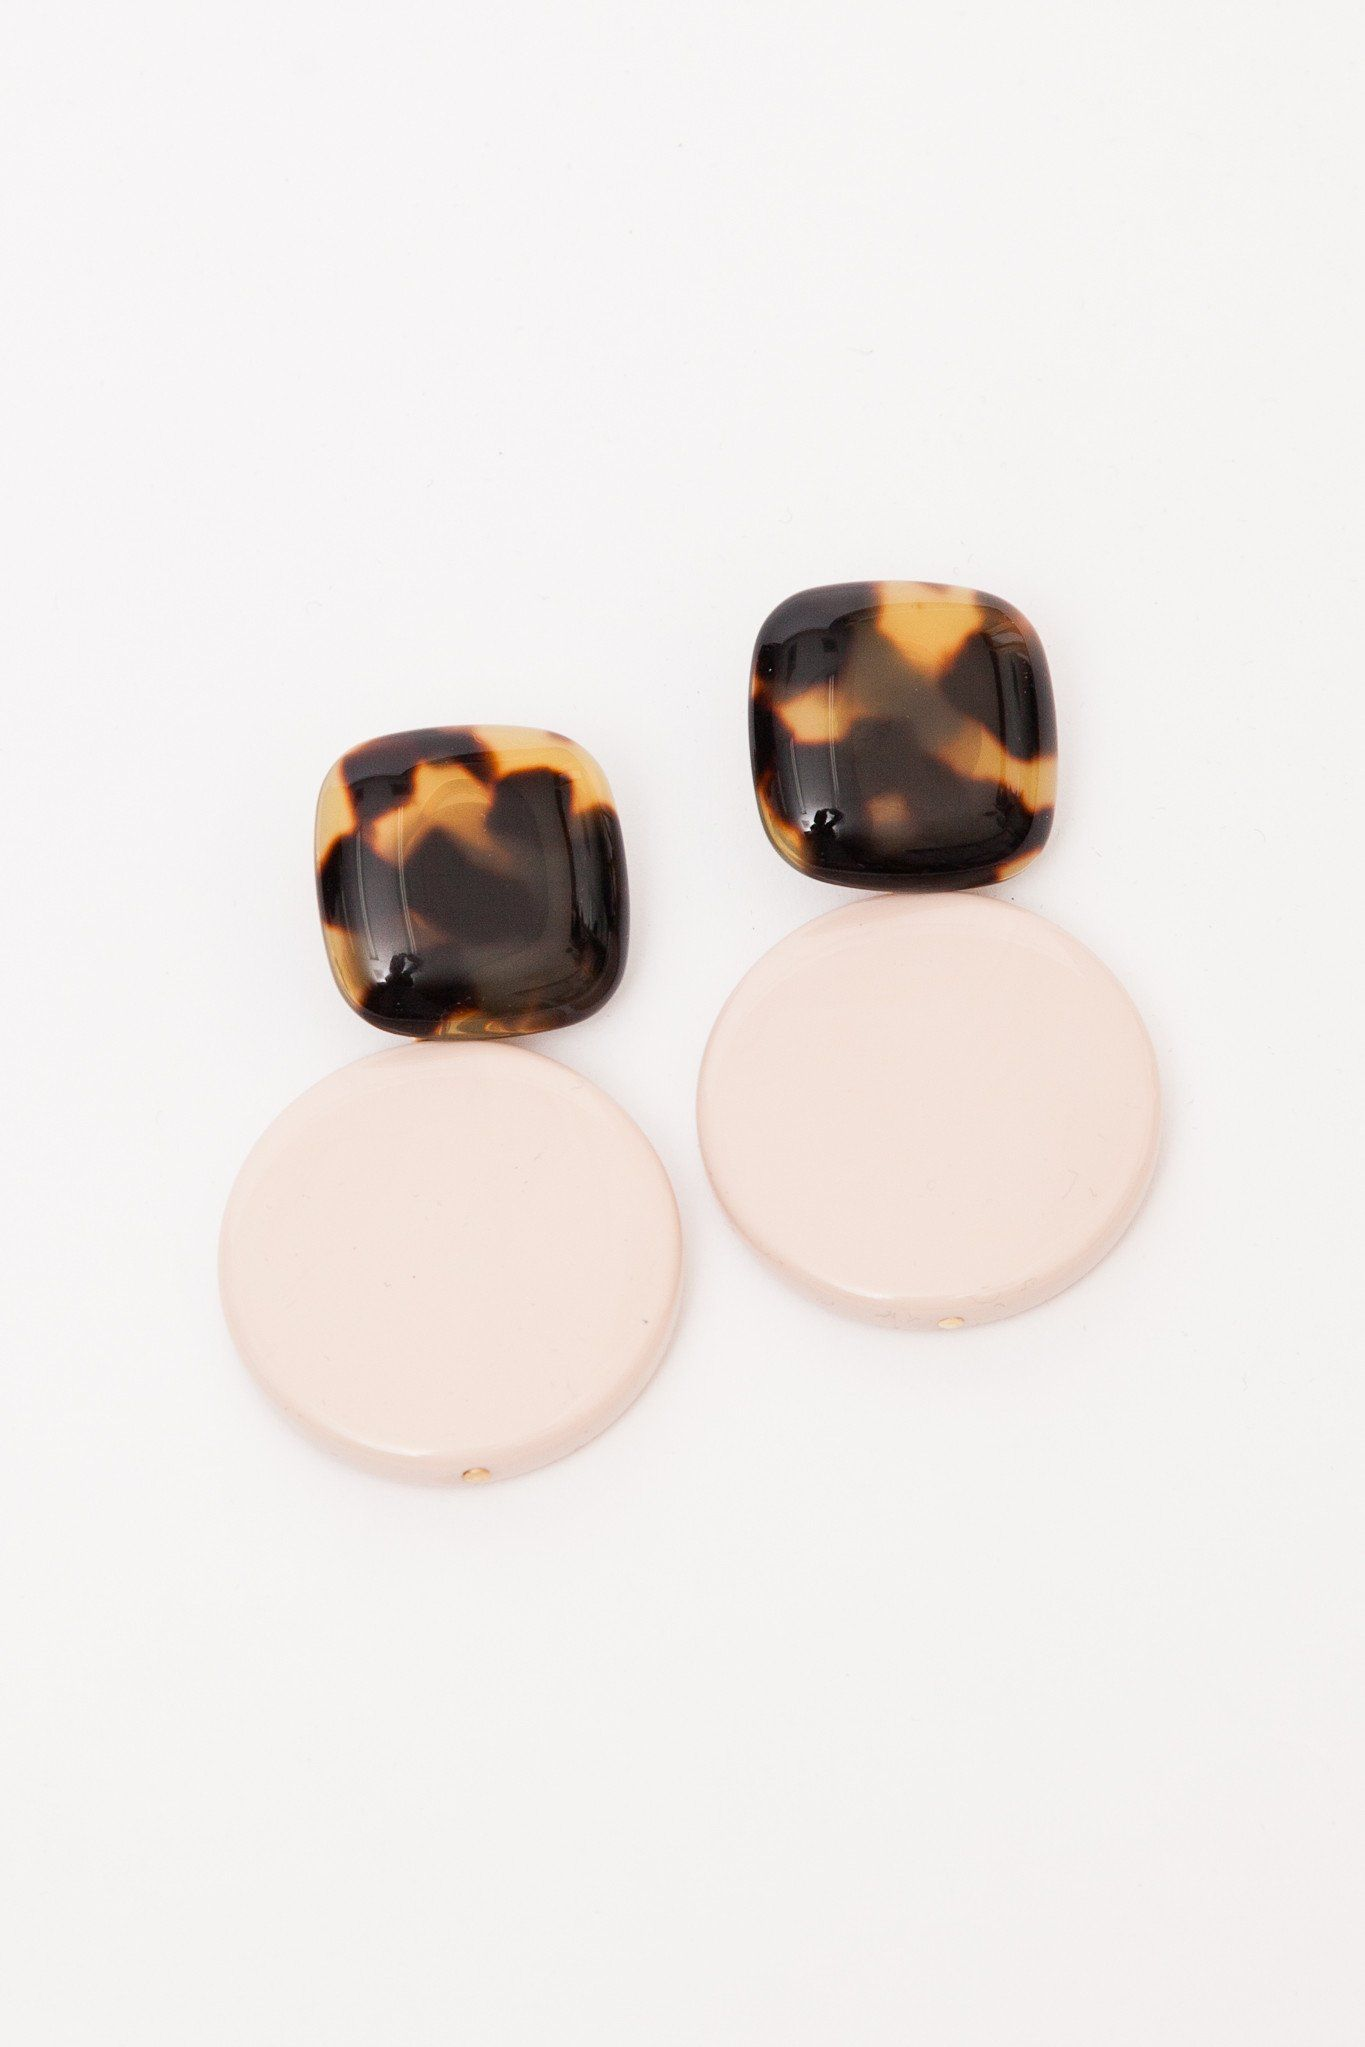 vanda earrings jacintho operandi moda tortoiseshell brown studded by large tortoise close acrylic loading